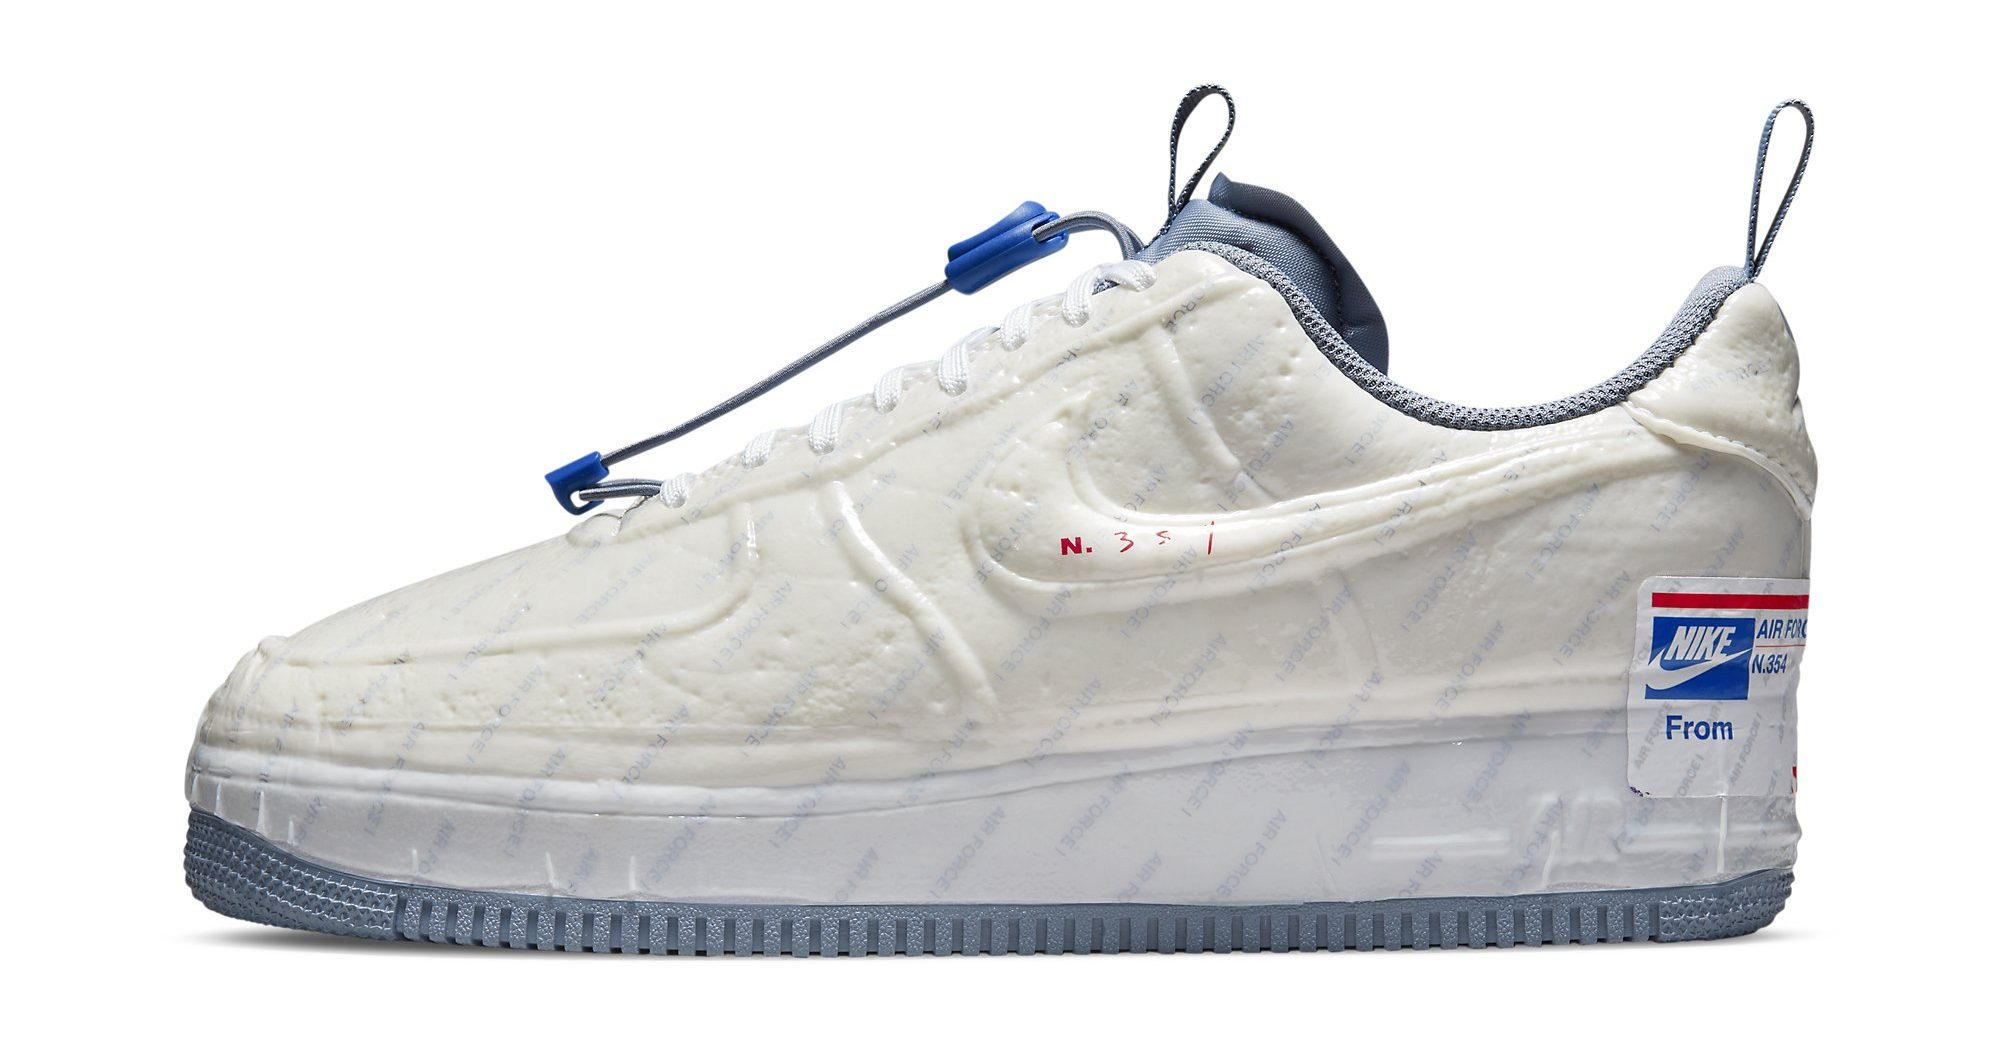 Nike Air Force 1 Experimental 'USPS' Release Info: How to Buy ...